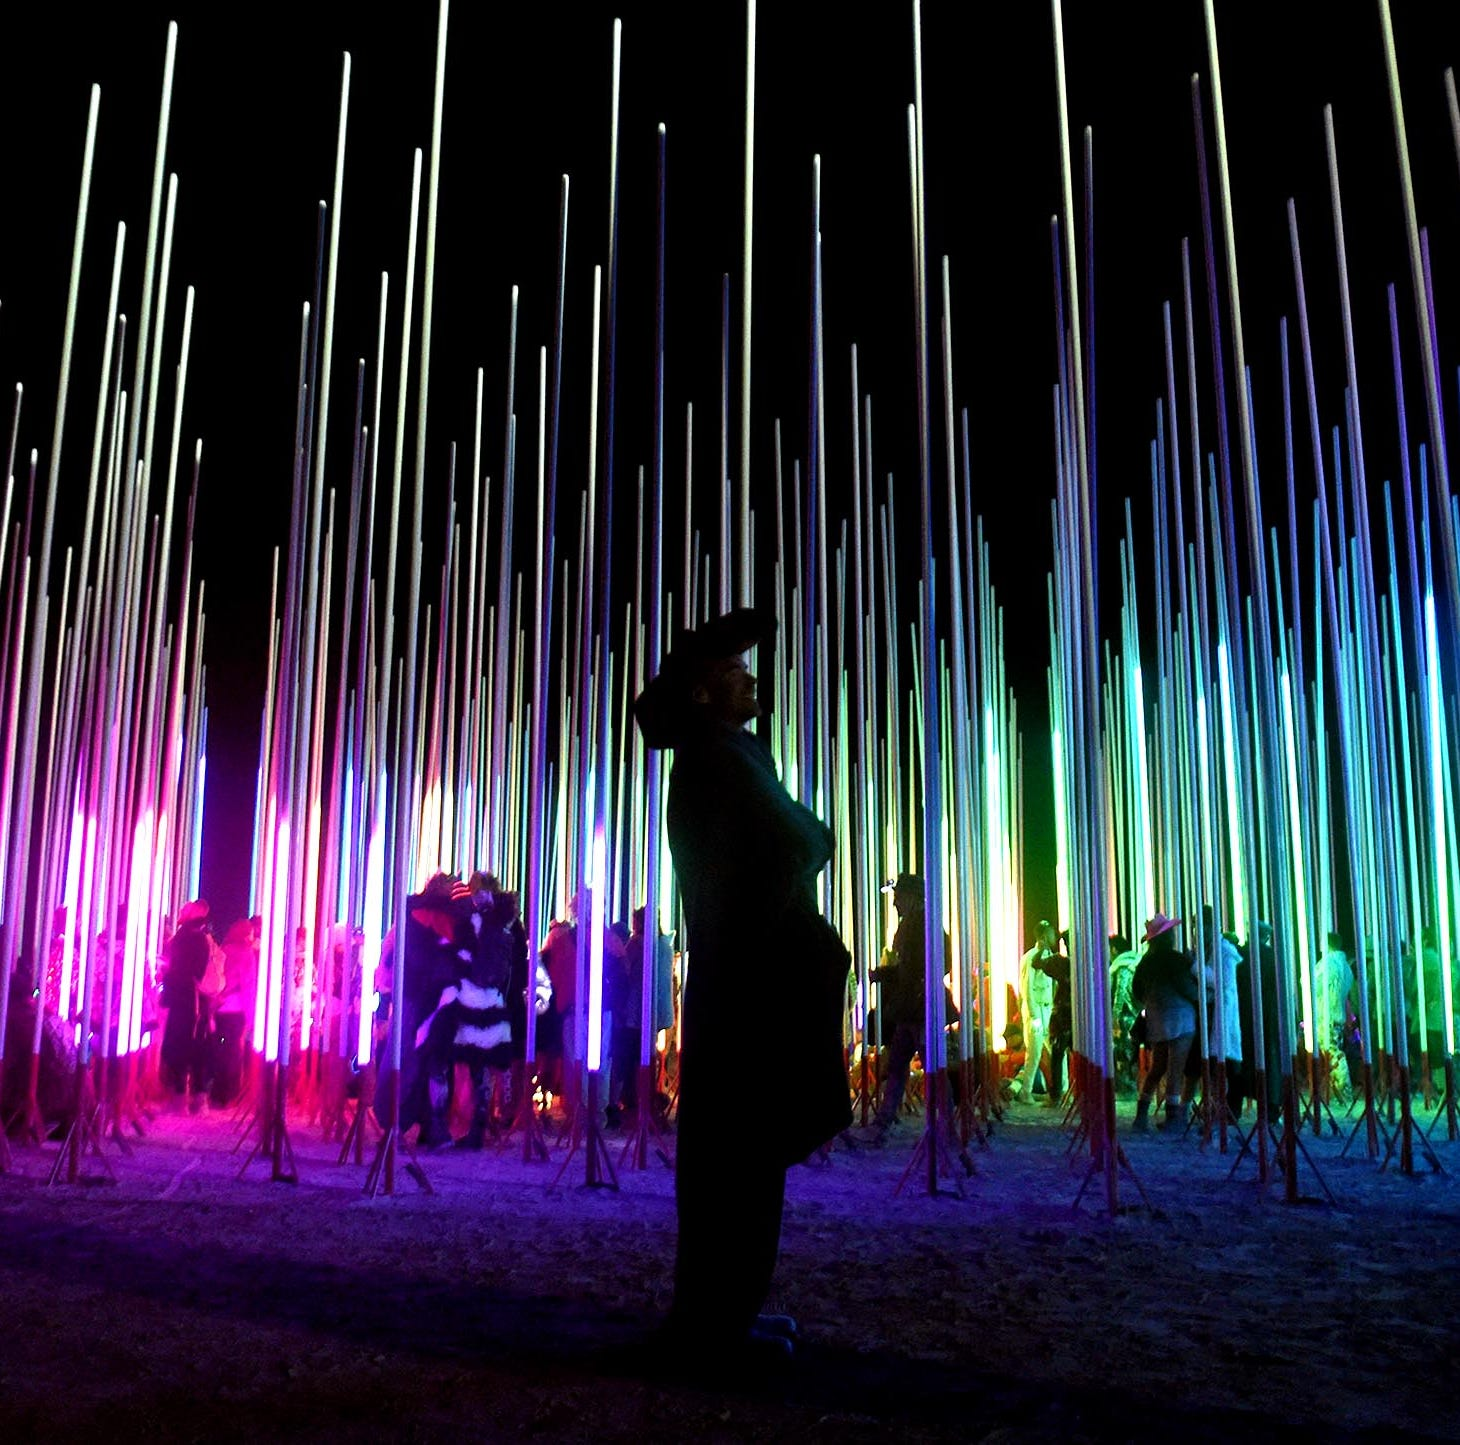 Could there be 100,000 people at Burning Man? Draft BLM report analyzes impact on playa